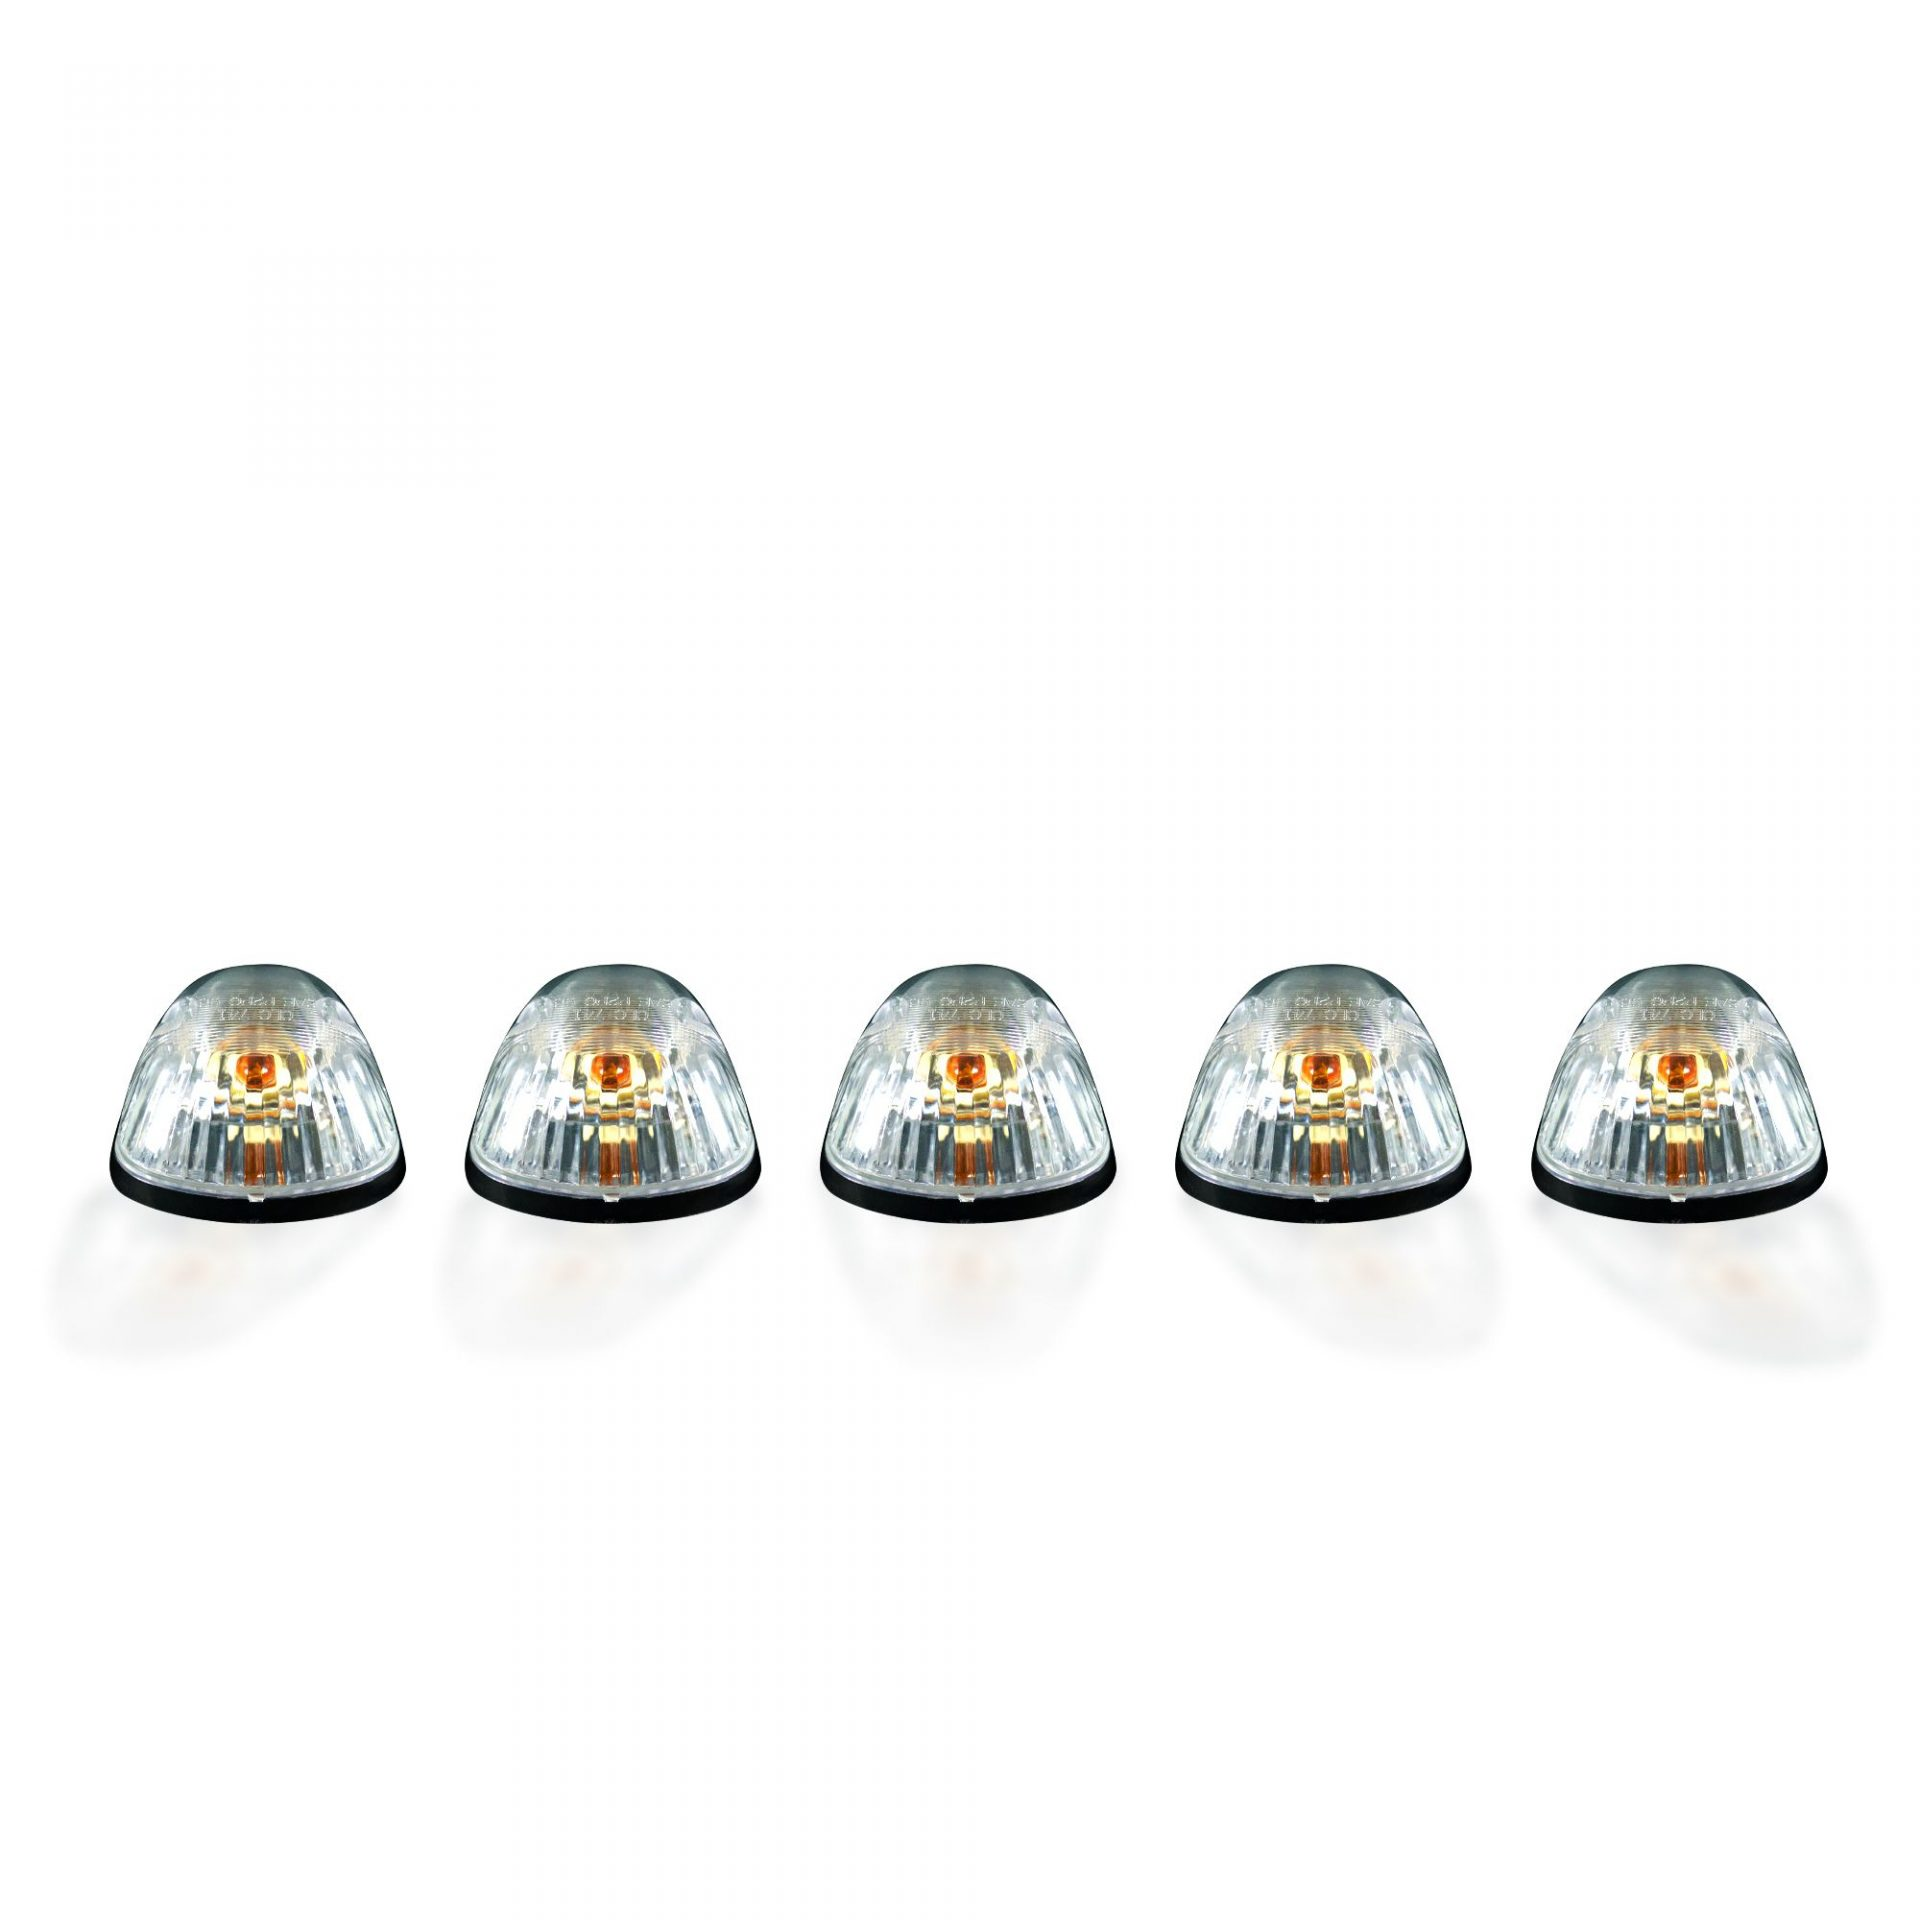 Dodge 5 Piece Cab Roof Light Set 194 Bulbs Clear Lens In